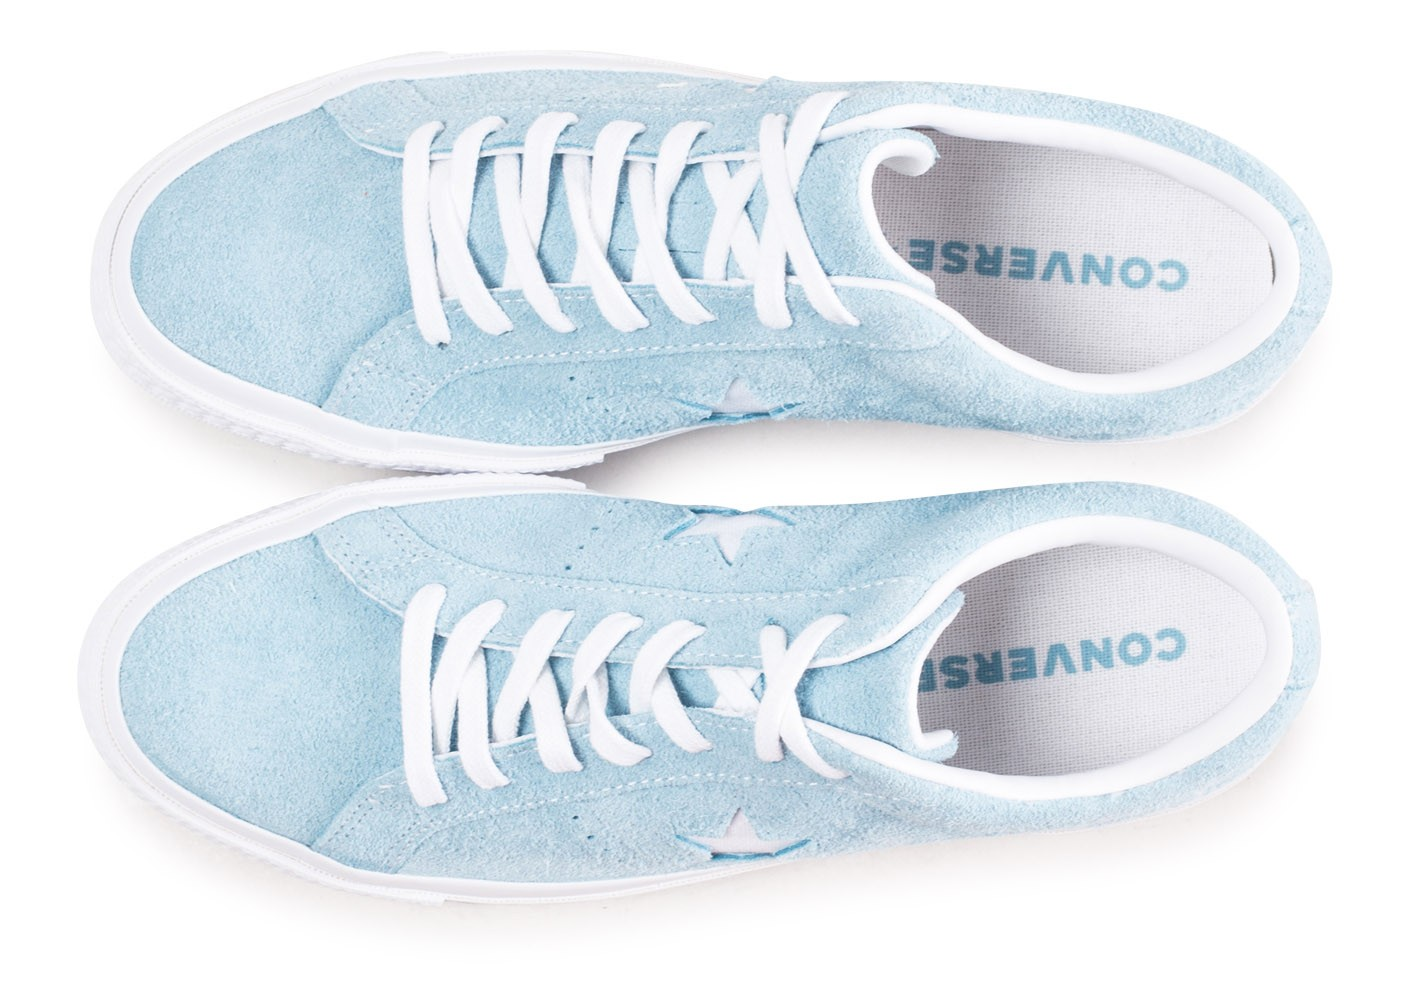 Converse One Star Vintage OX Suede bleu - Chaussures Baskets homme ...